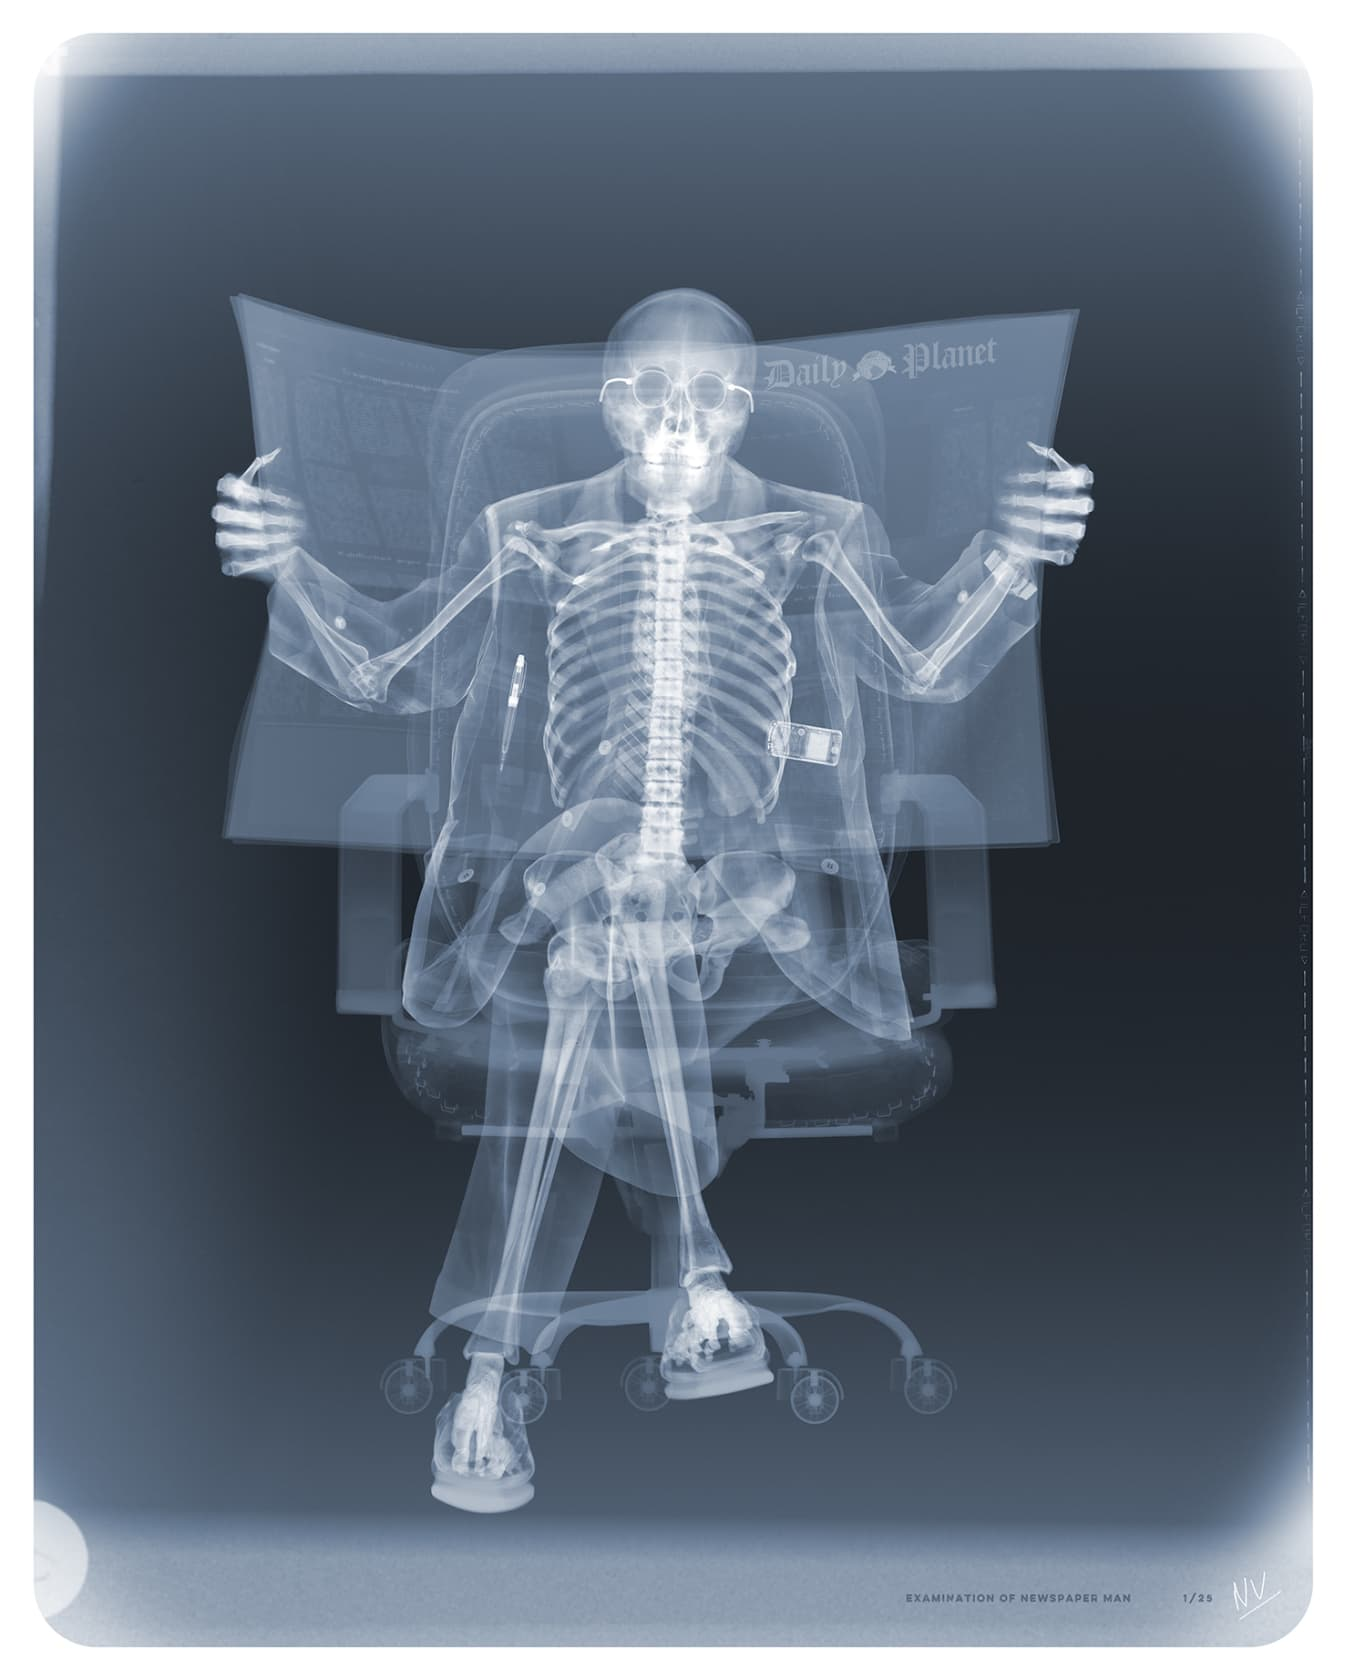 Nick Veasey, Examination of Newspaper Man, 2020